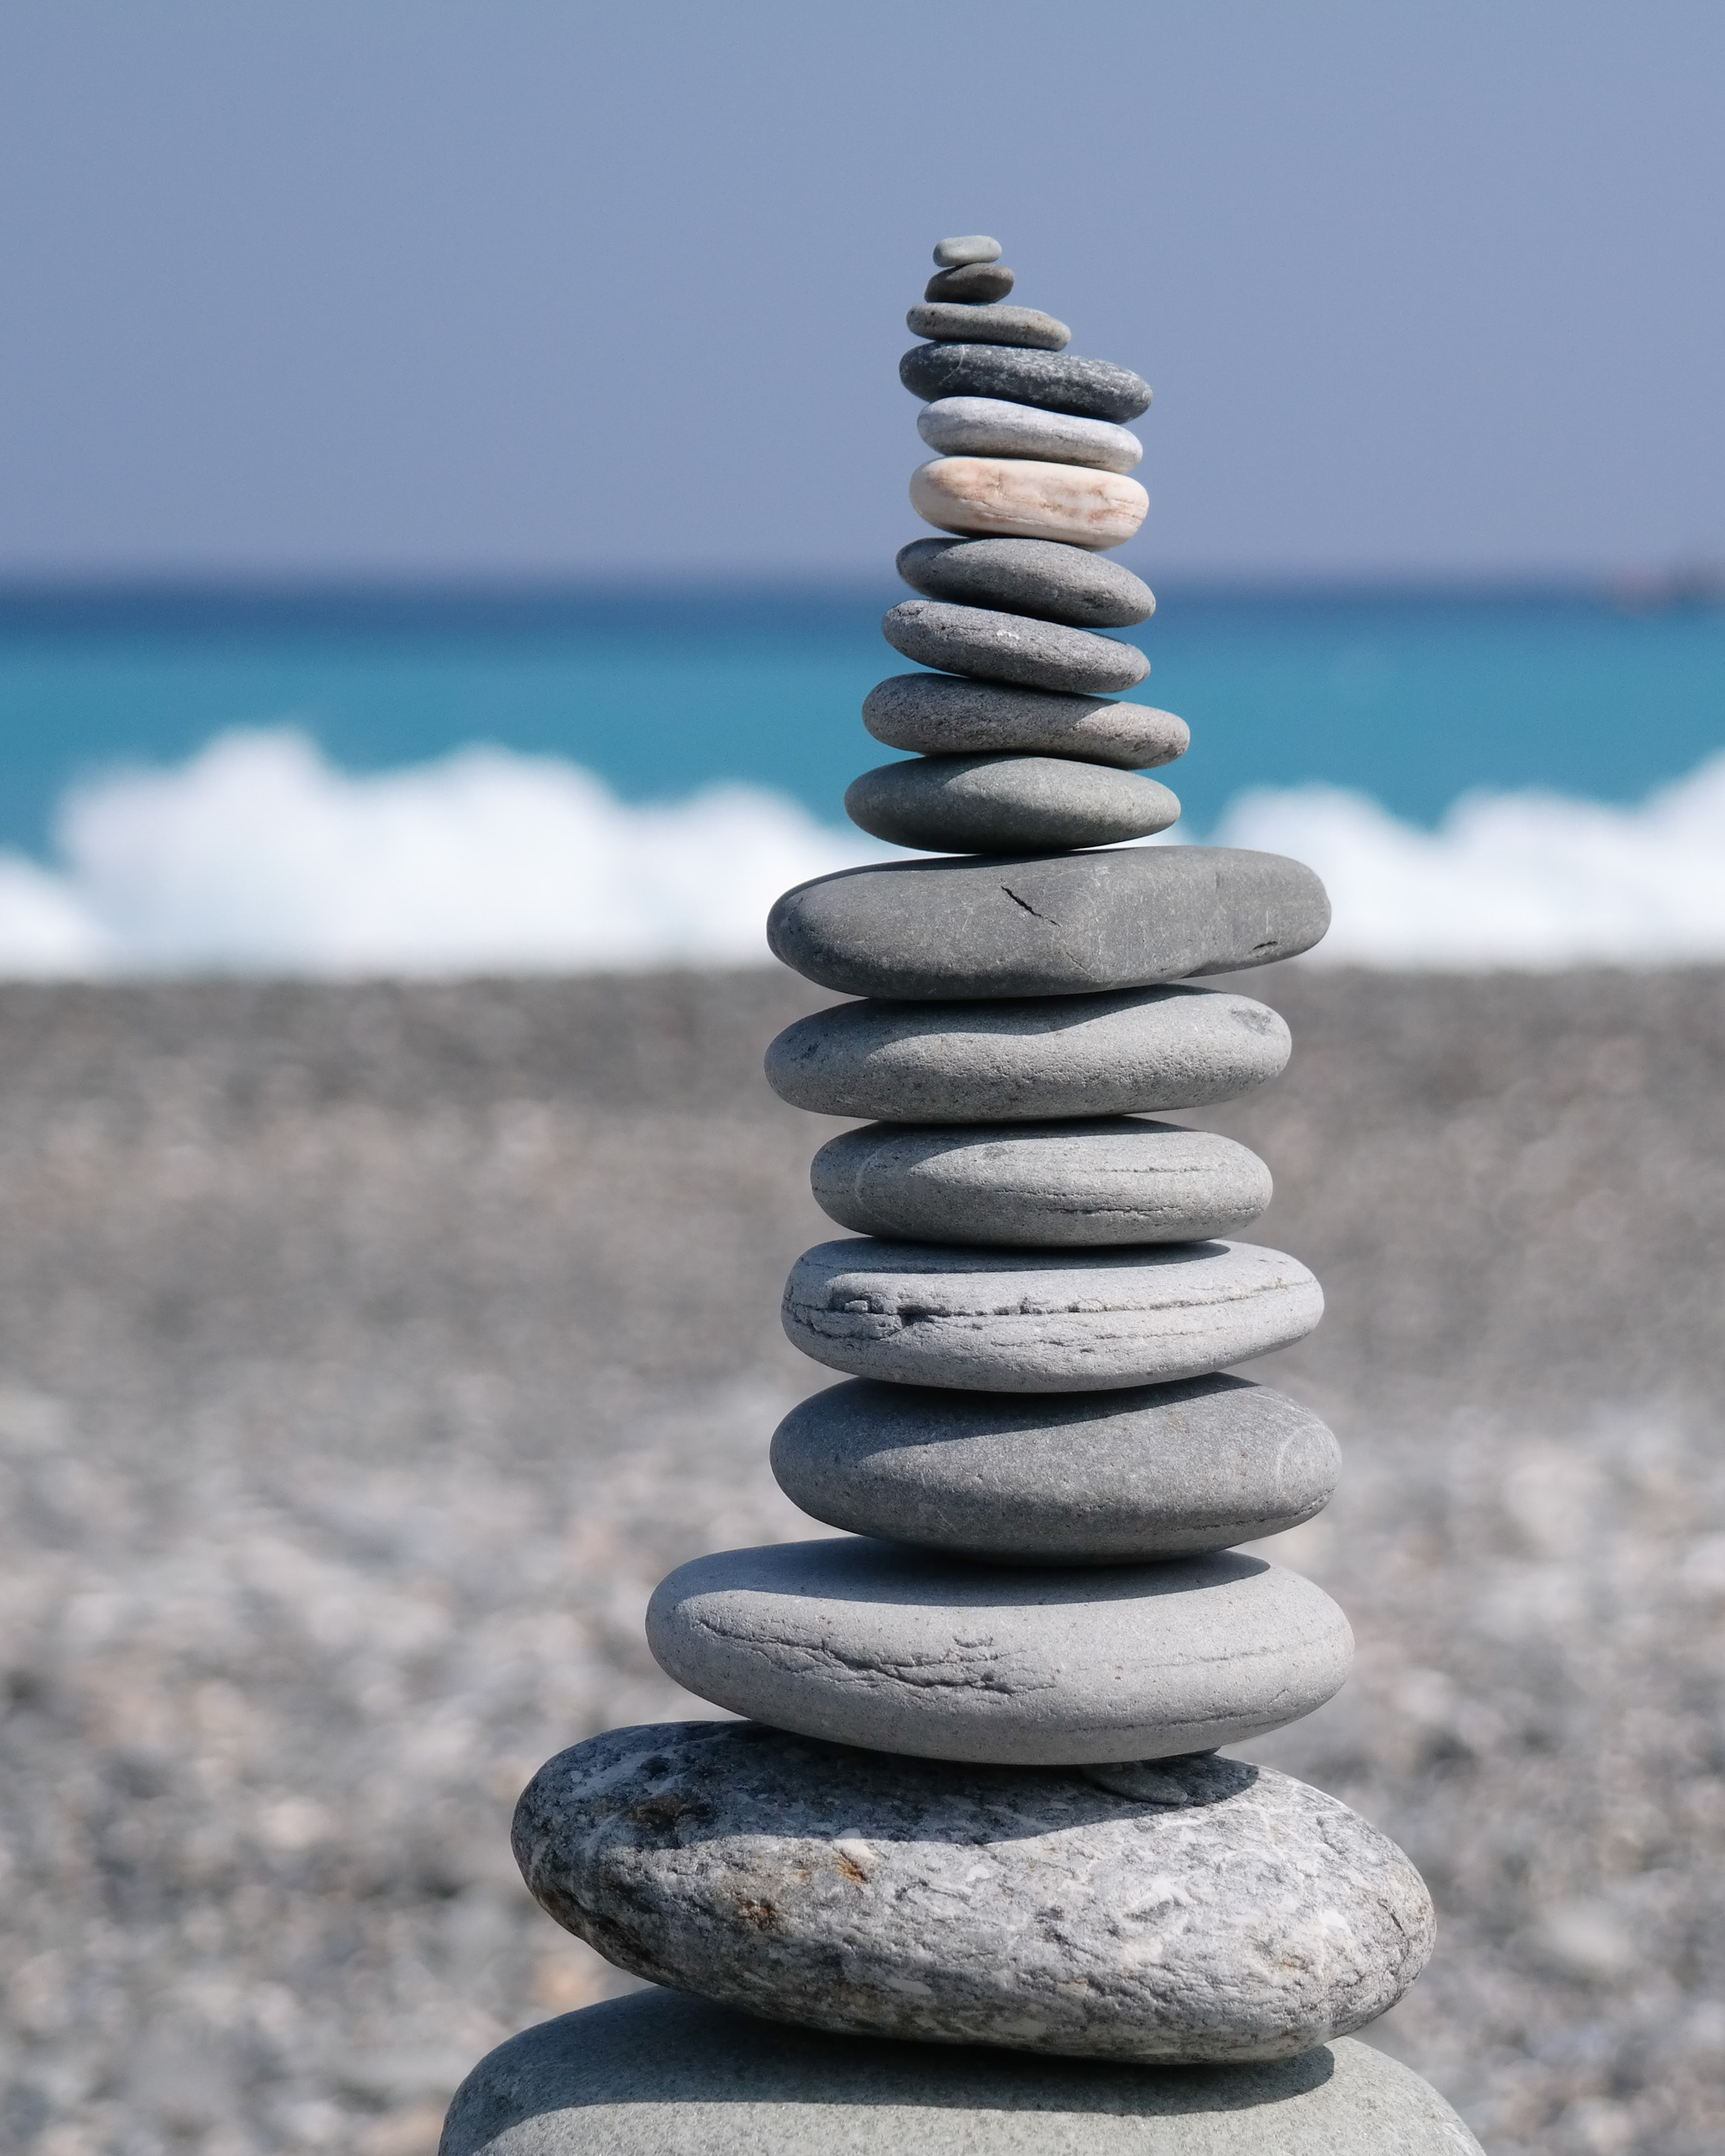 101932 download wallpaper Nature, Stones, Pebble, Balance, Coast screensavers and pictures for free